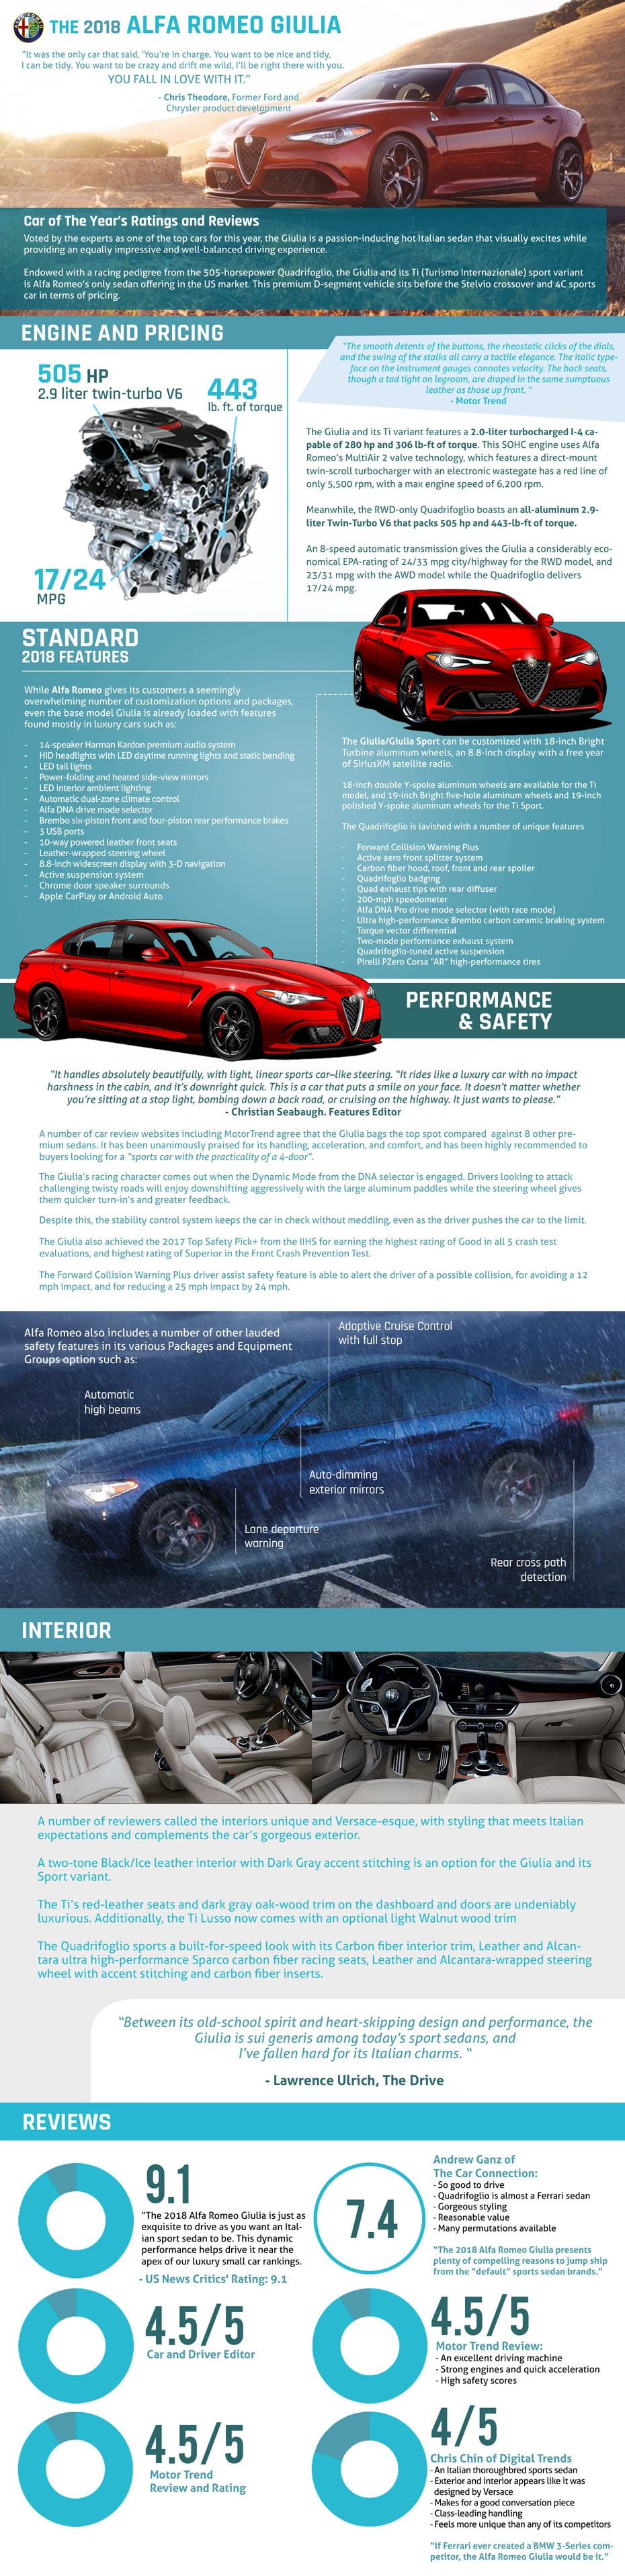 7 things you need to know about the Alfa Romeo Giulia